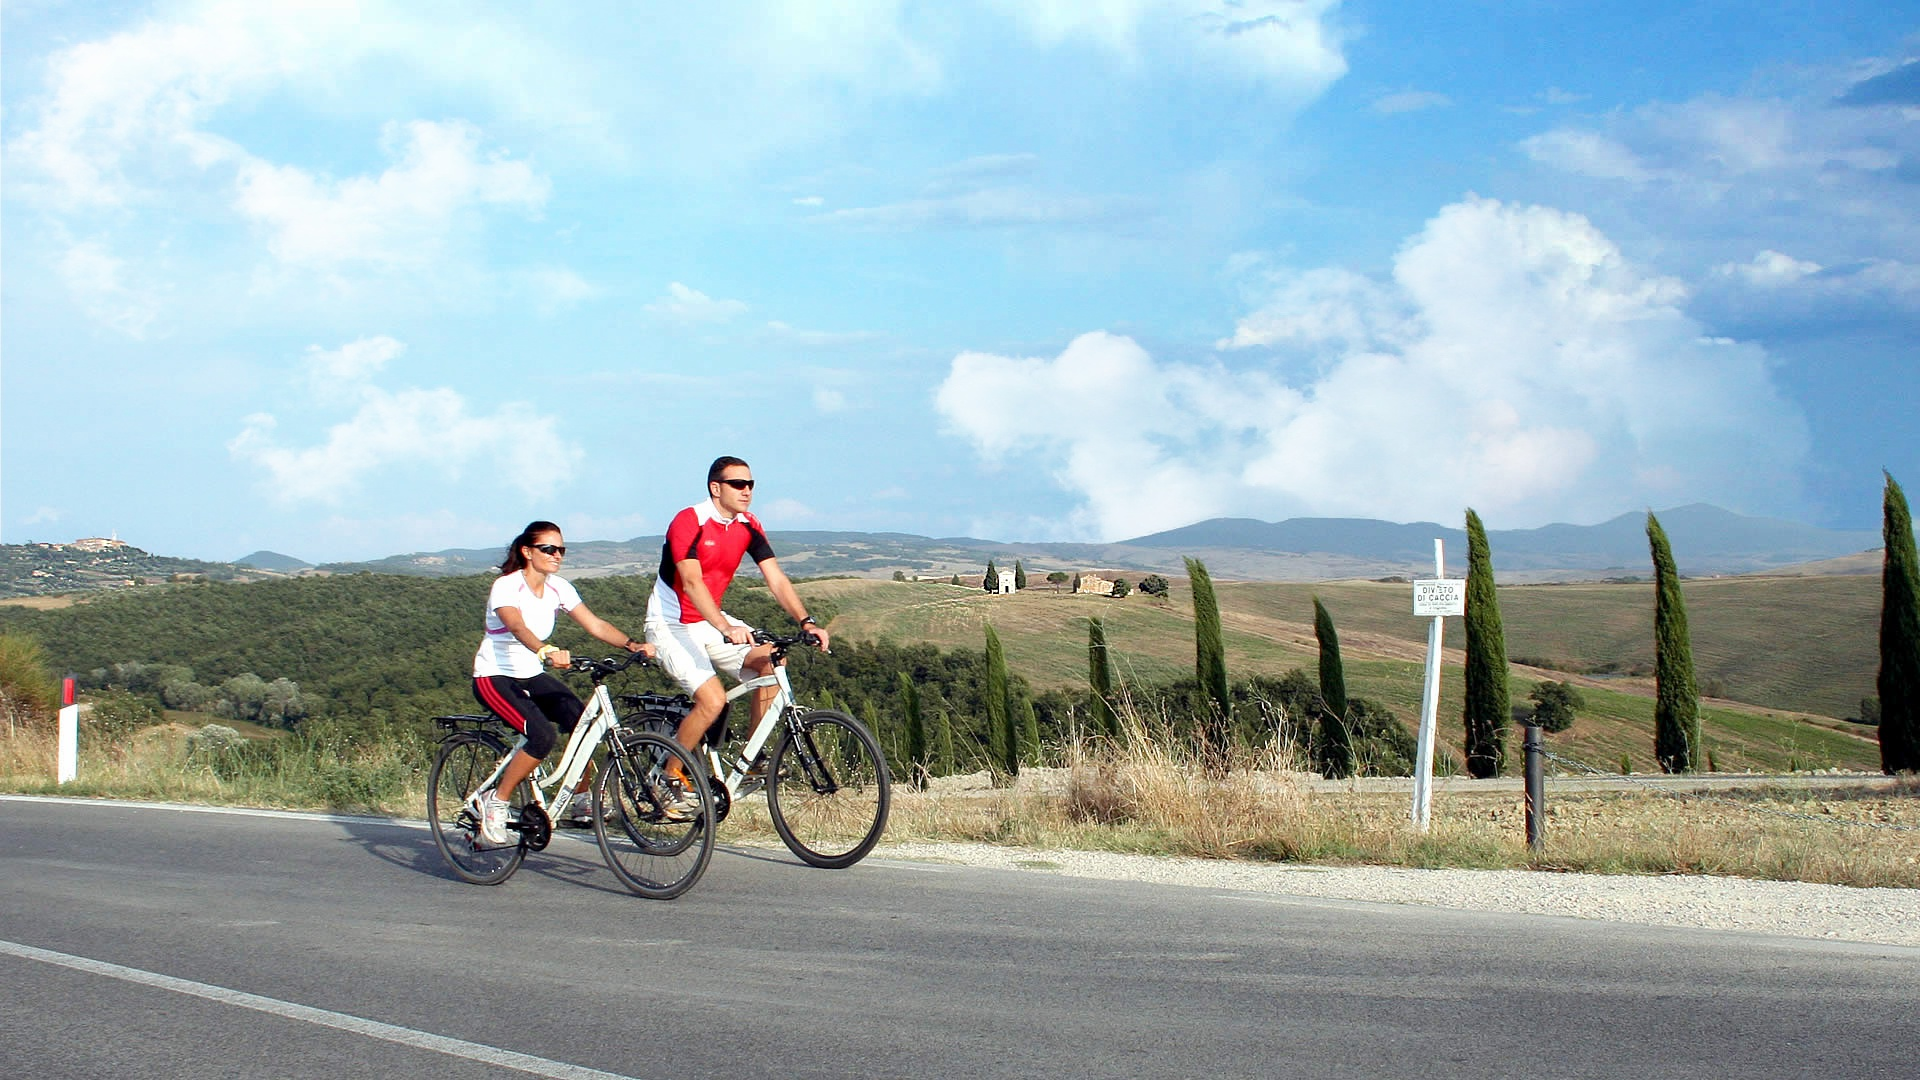 Bicycle Tour Of Tuscany Florence To Montepulciano